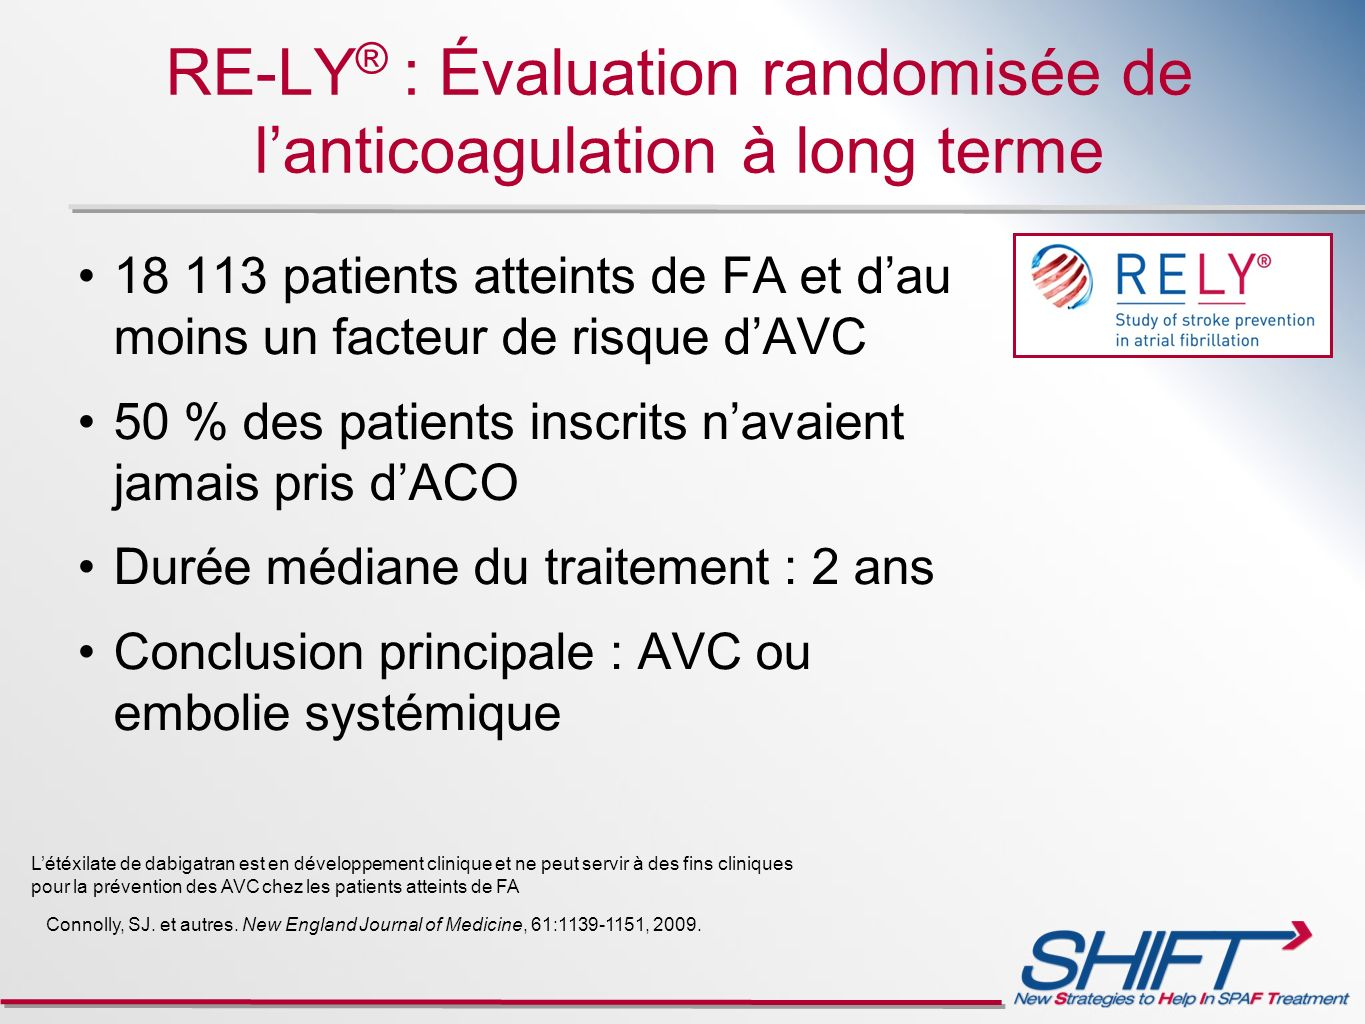 RE-LY® : Évaluation randomisée de l'anticoagulation à long terme